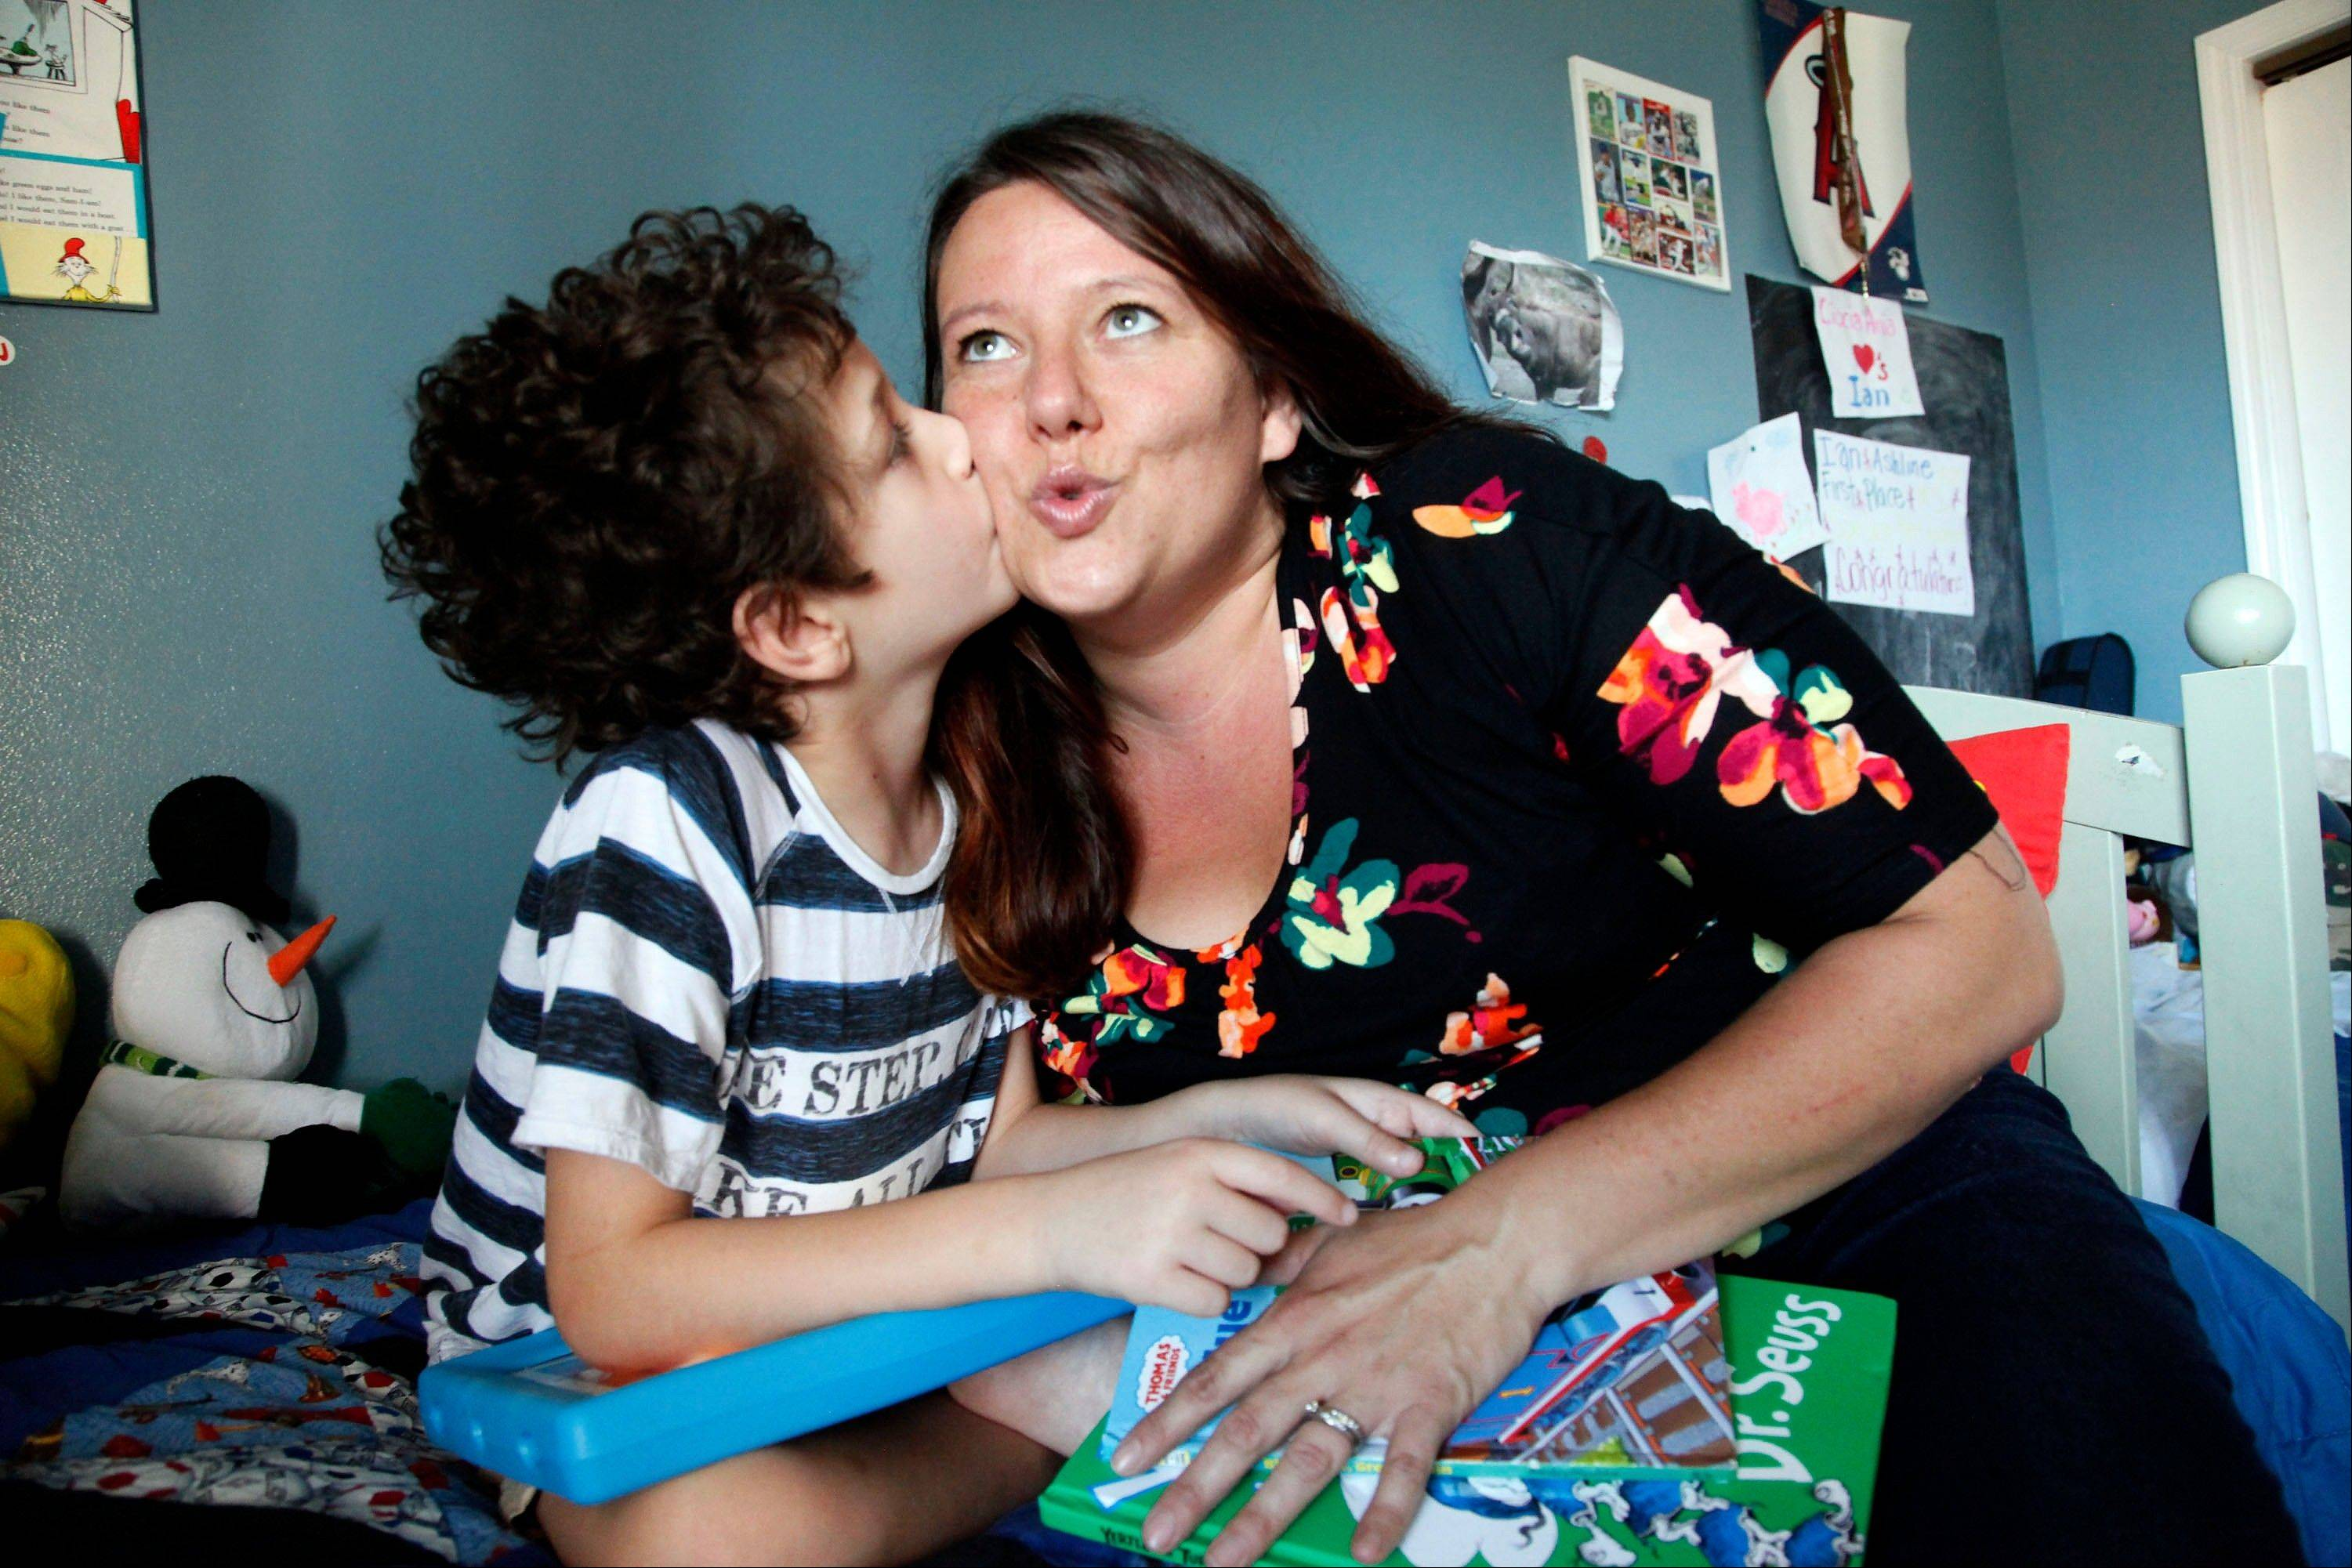 Andrew Ashline, 11, kisses his mother, Jo Ashline, at their home in Orange, Calif. Jo Ashline describes her home as resembling Fort Knox with its array of security measures aimed at deterring possible wandering by her son, Andrew, who has autism.